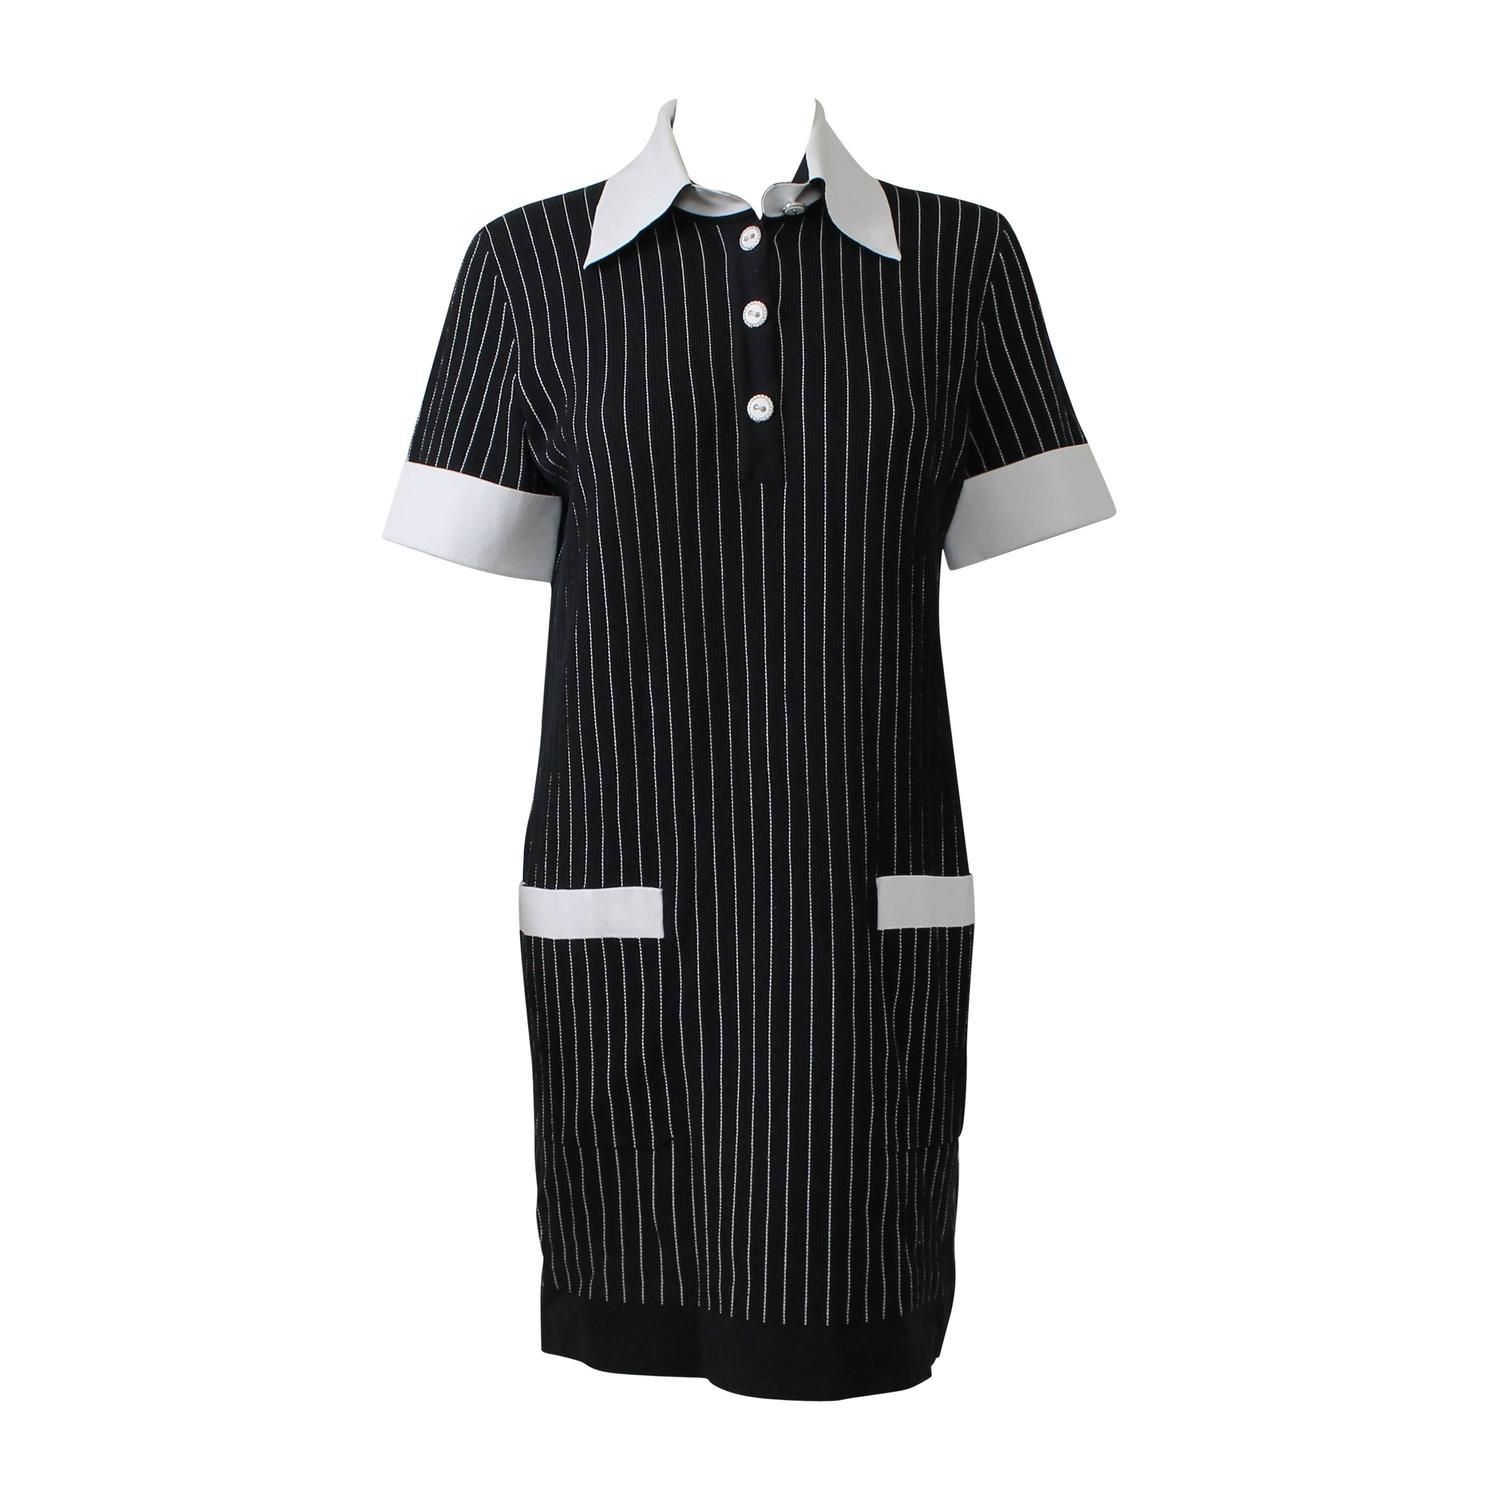 Chanel Black and White Pinstriped Cotton Nylon Collared Short Dress